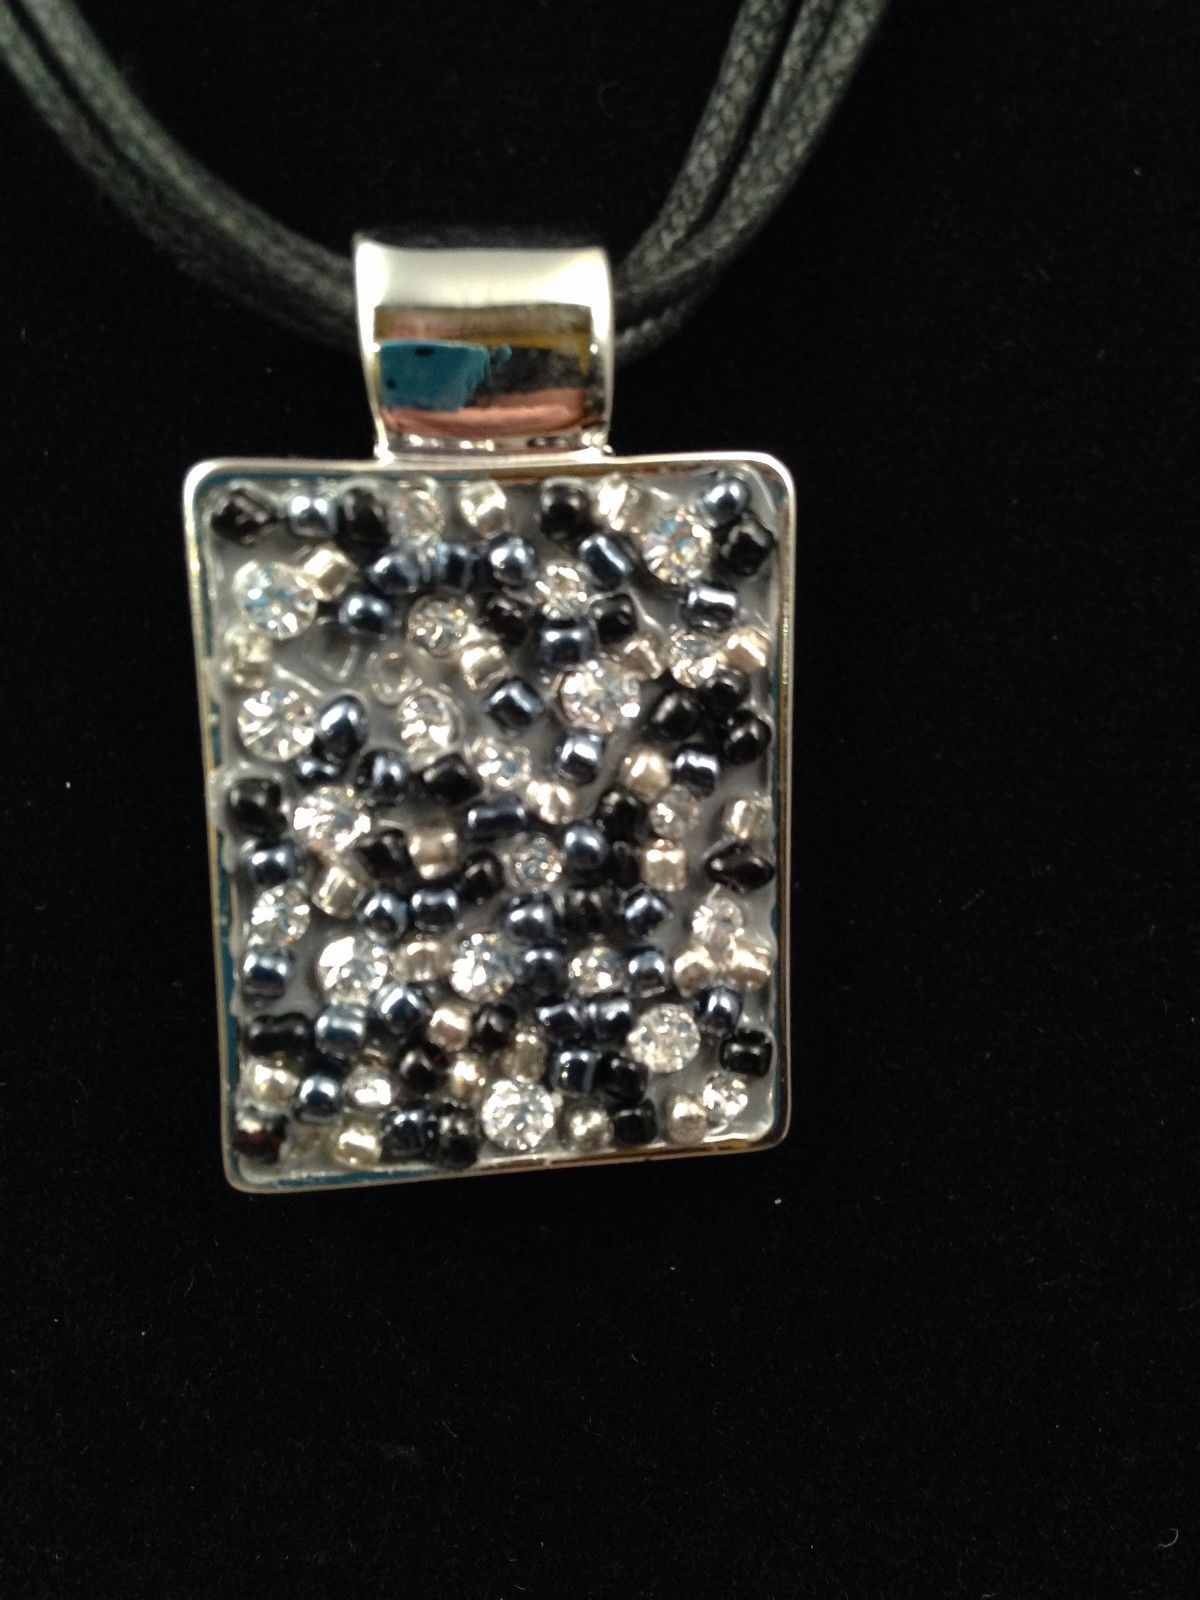 New Cookie Lee Necklace w/ Sparkley Black / White Pendant on Fabric Chain